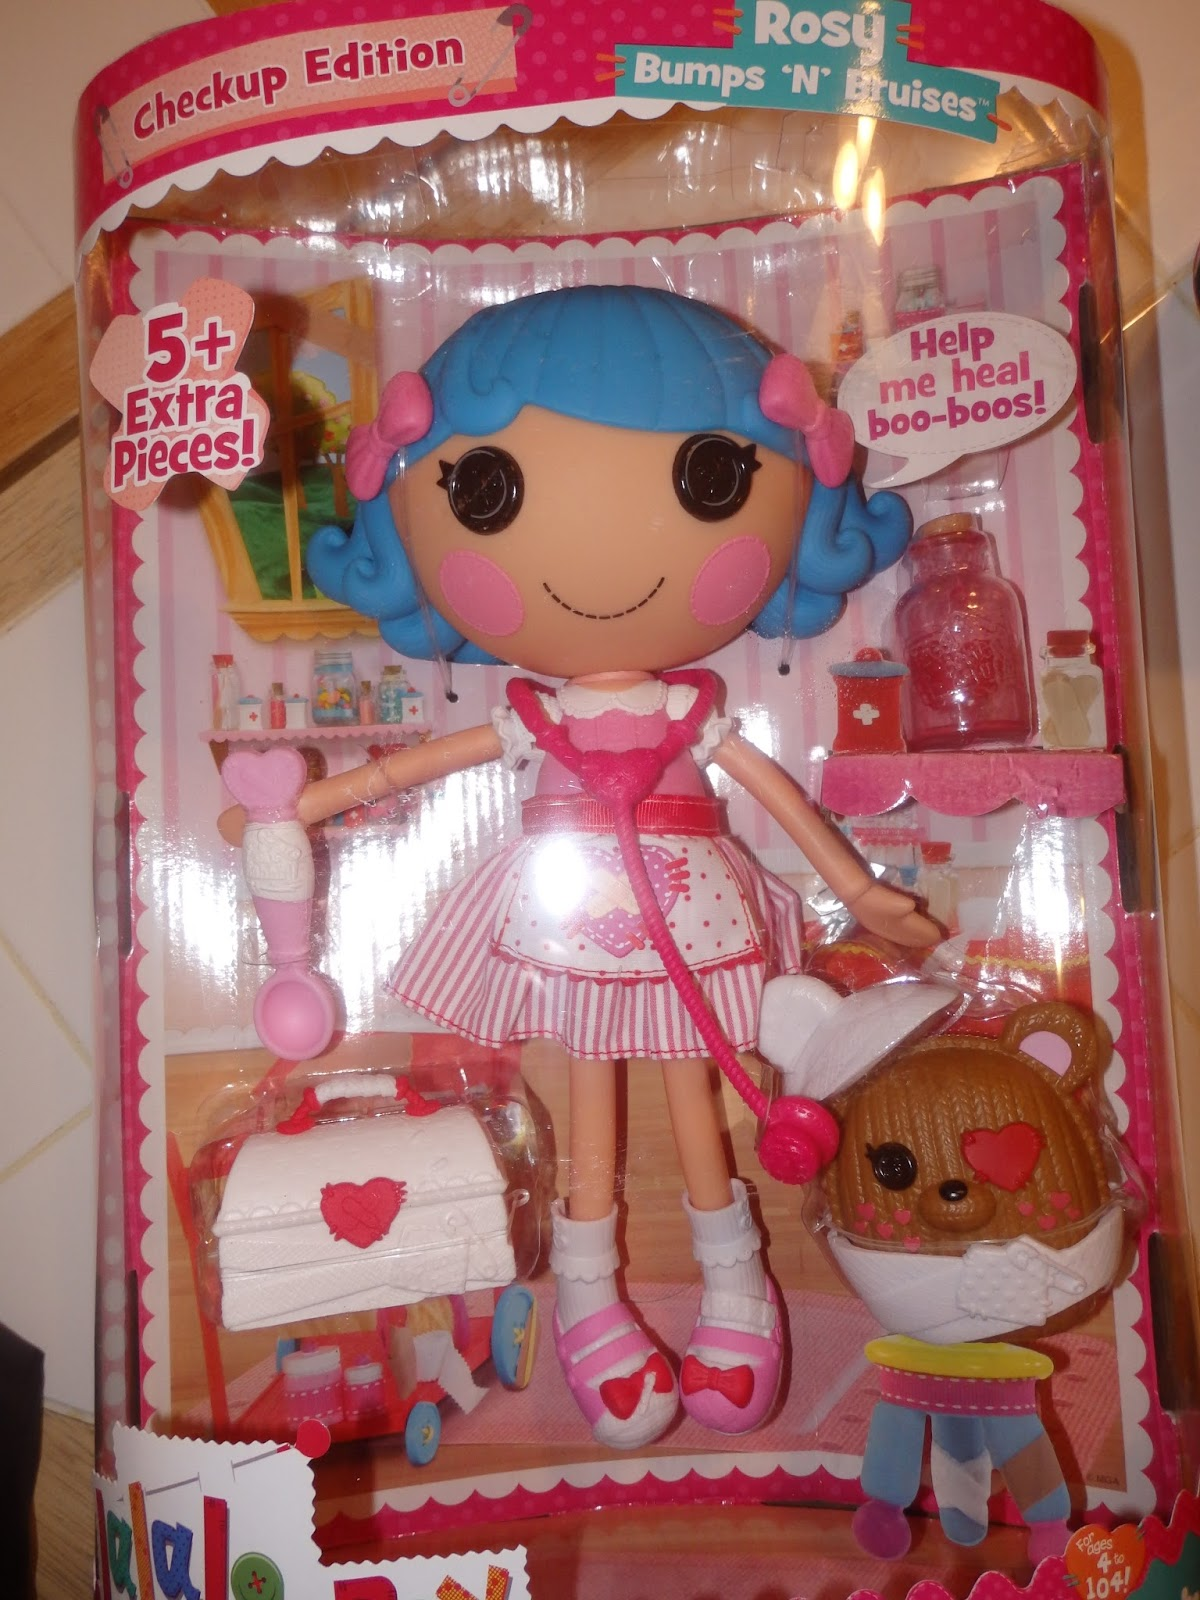 Her Dress Is Made To Look Like A Candy Strippers Gown With Pink Stripes And Cute Little She Also Has Pretty Bows In Beautiful Blue Hair